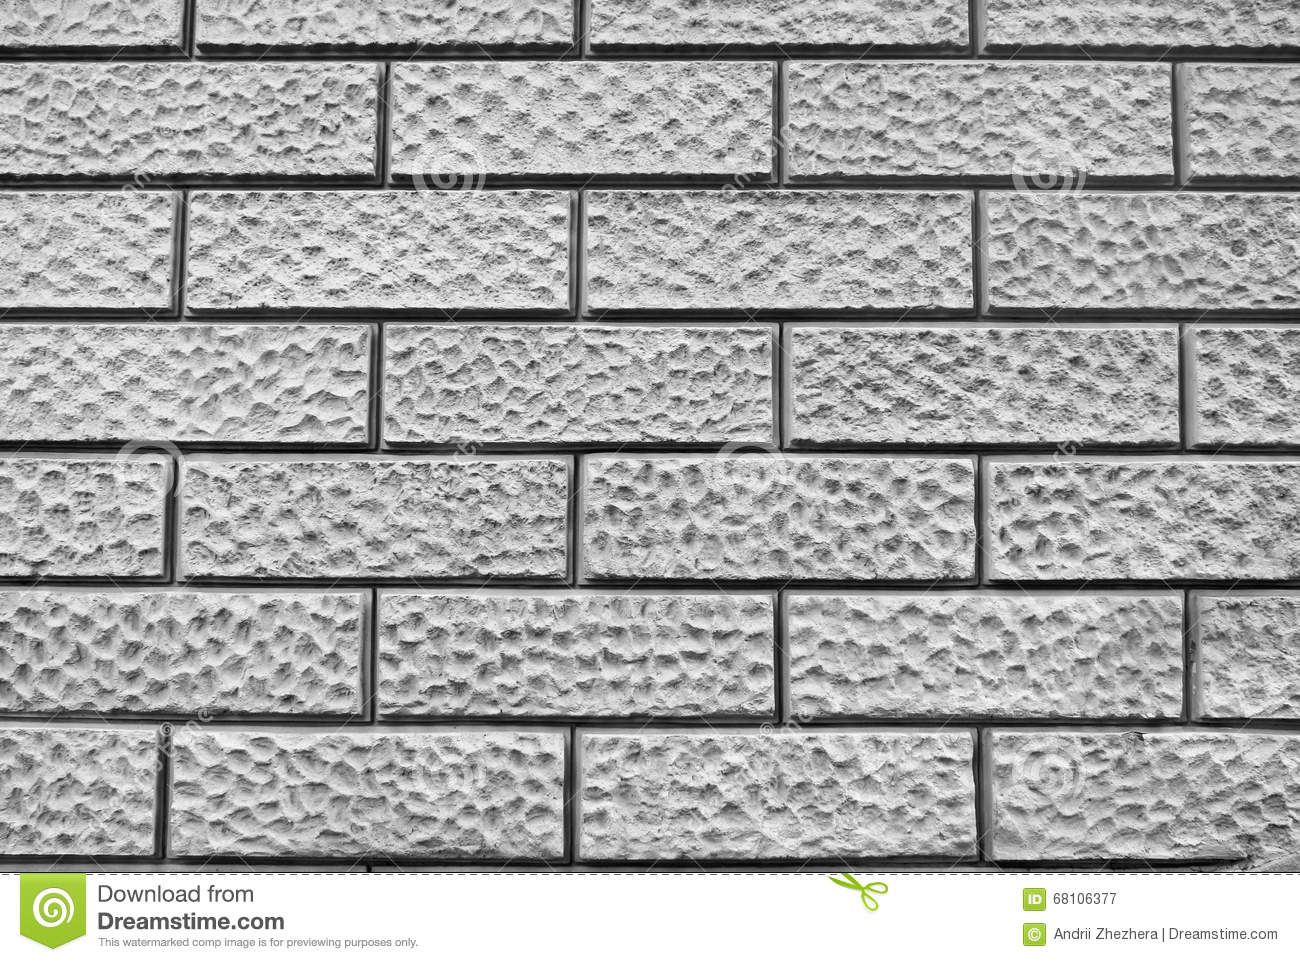 Gray Cartoon Brick Wall Texture : Abstract weathered texture stained old stucco light gray